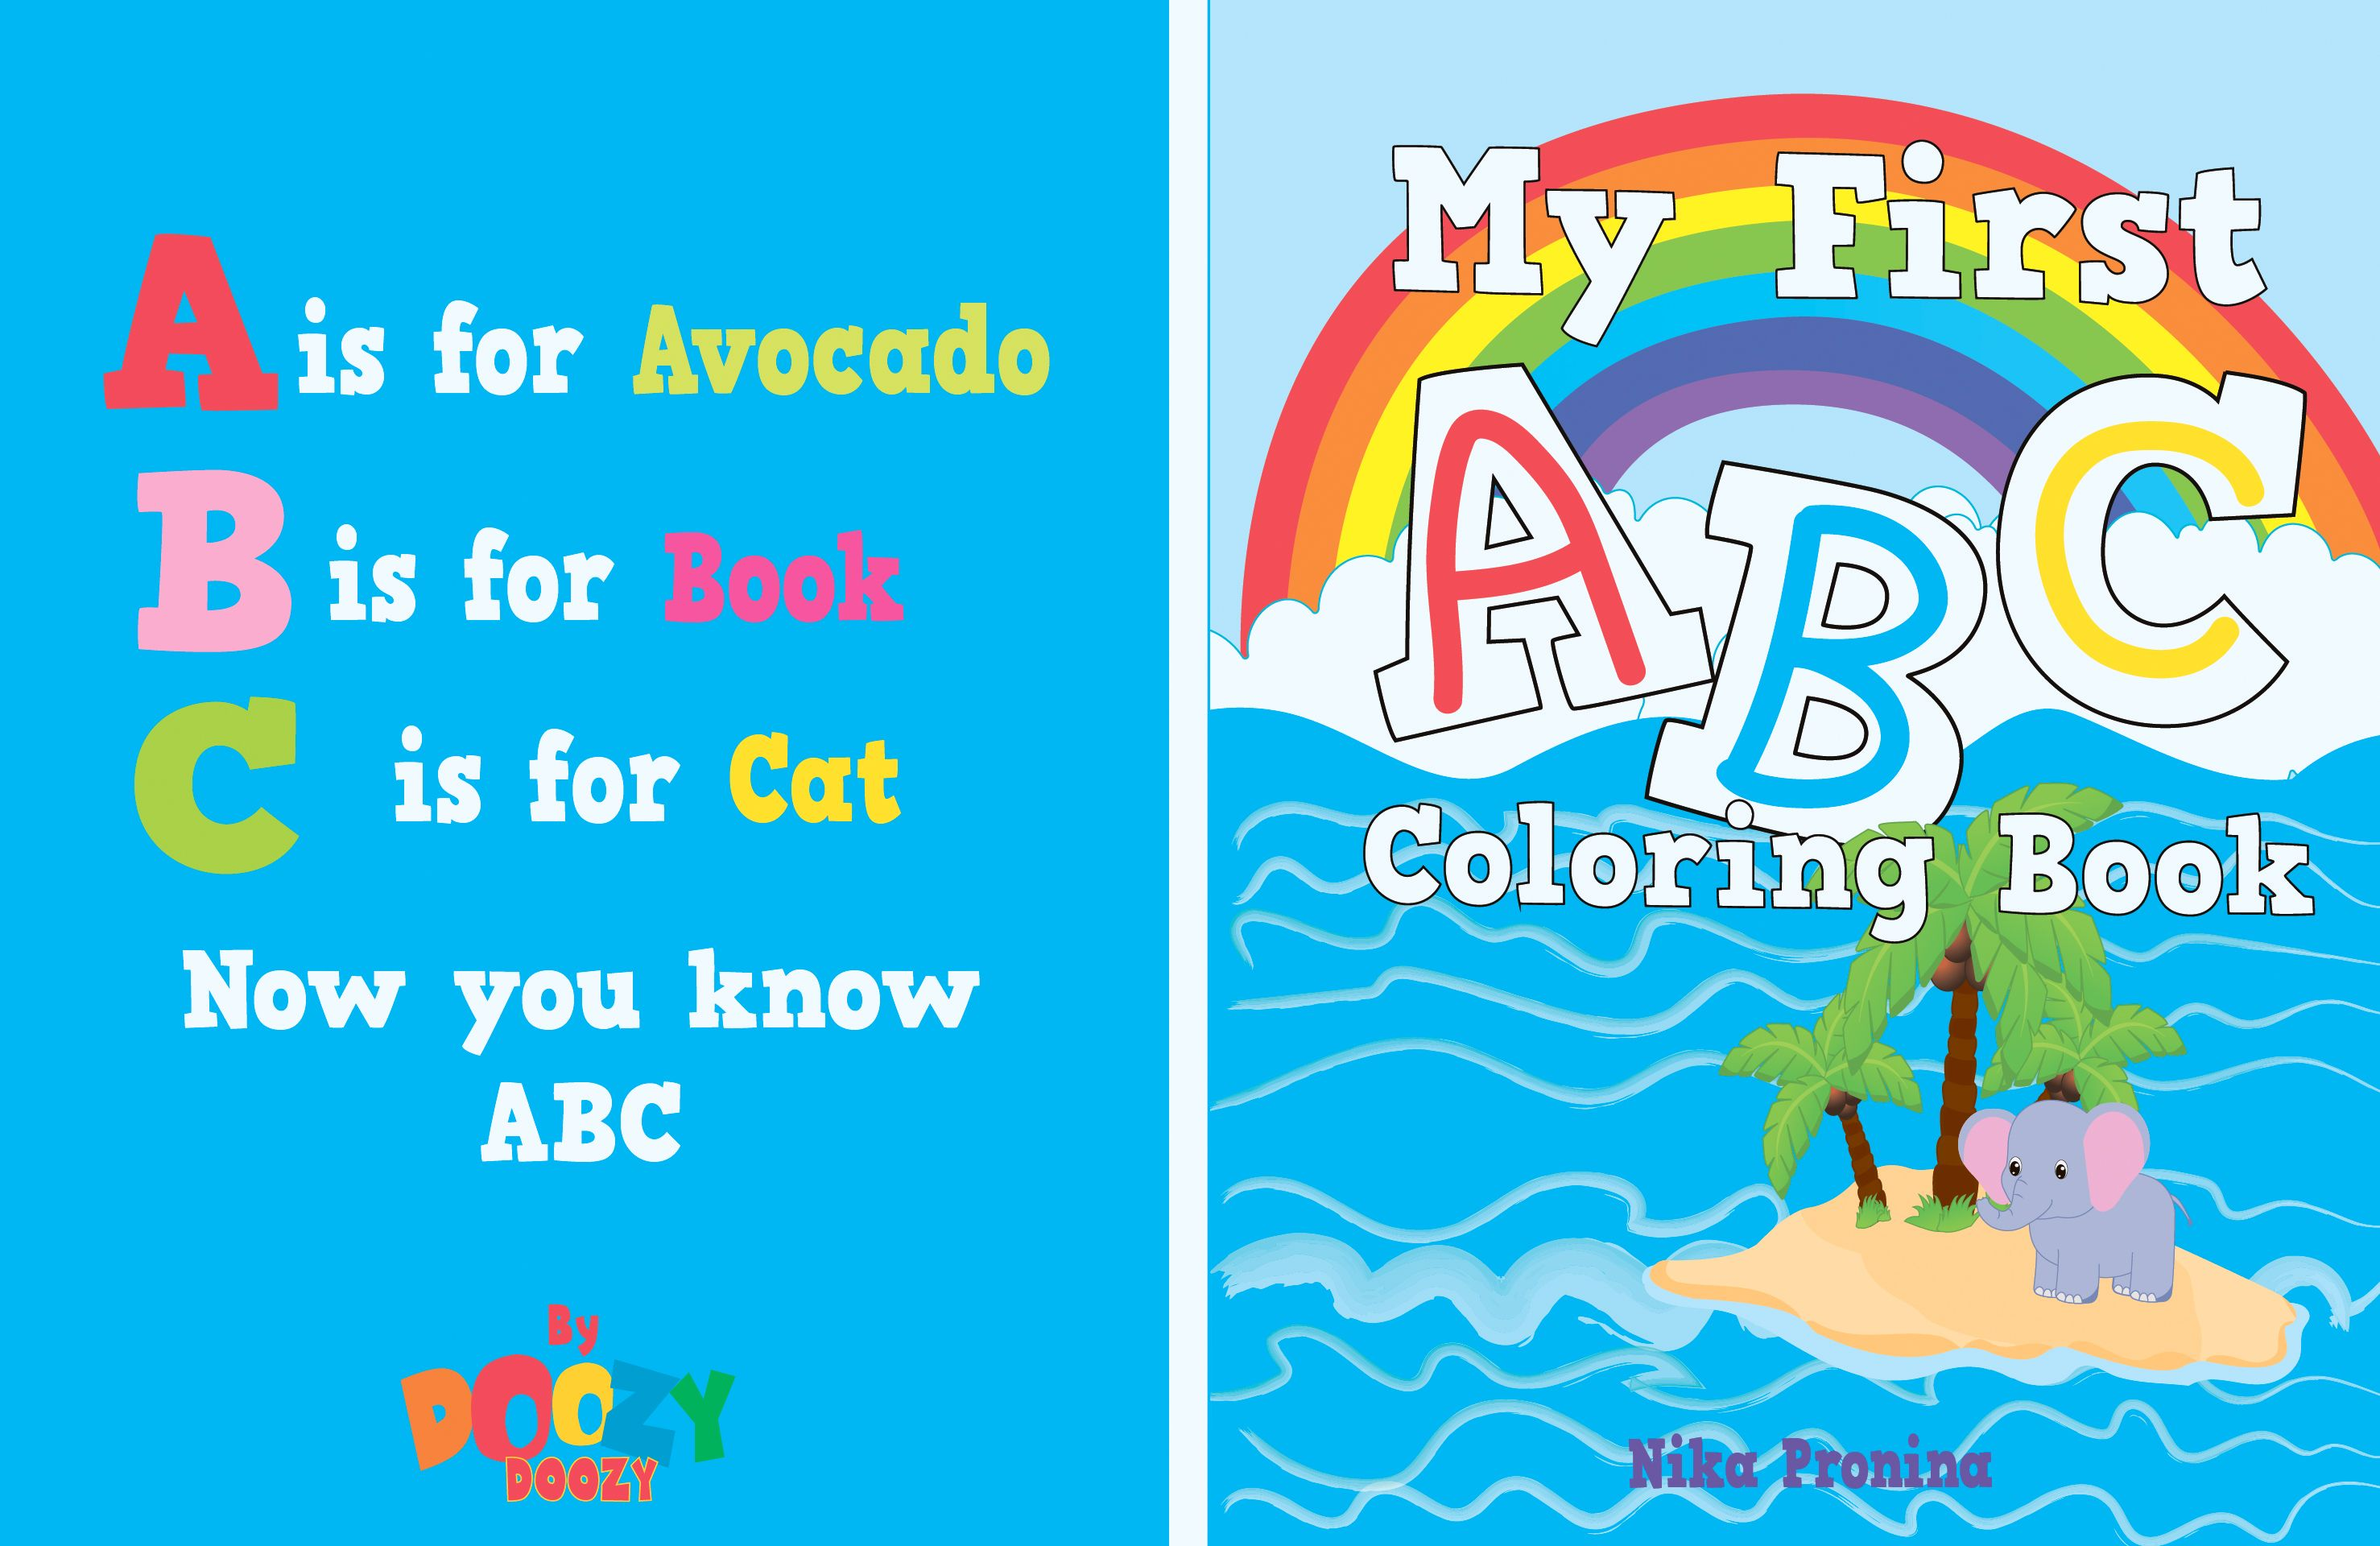 My First Abc Coloring Book By Nika Pronina On Amazon Abc Coloring Coloring Books Cat Coloring Book